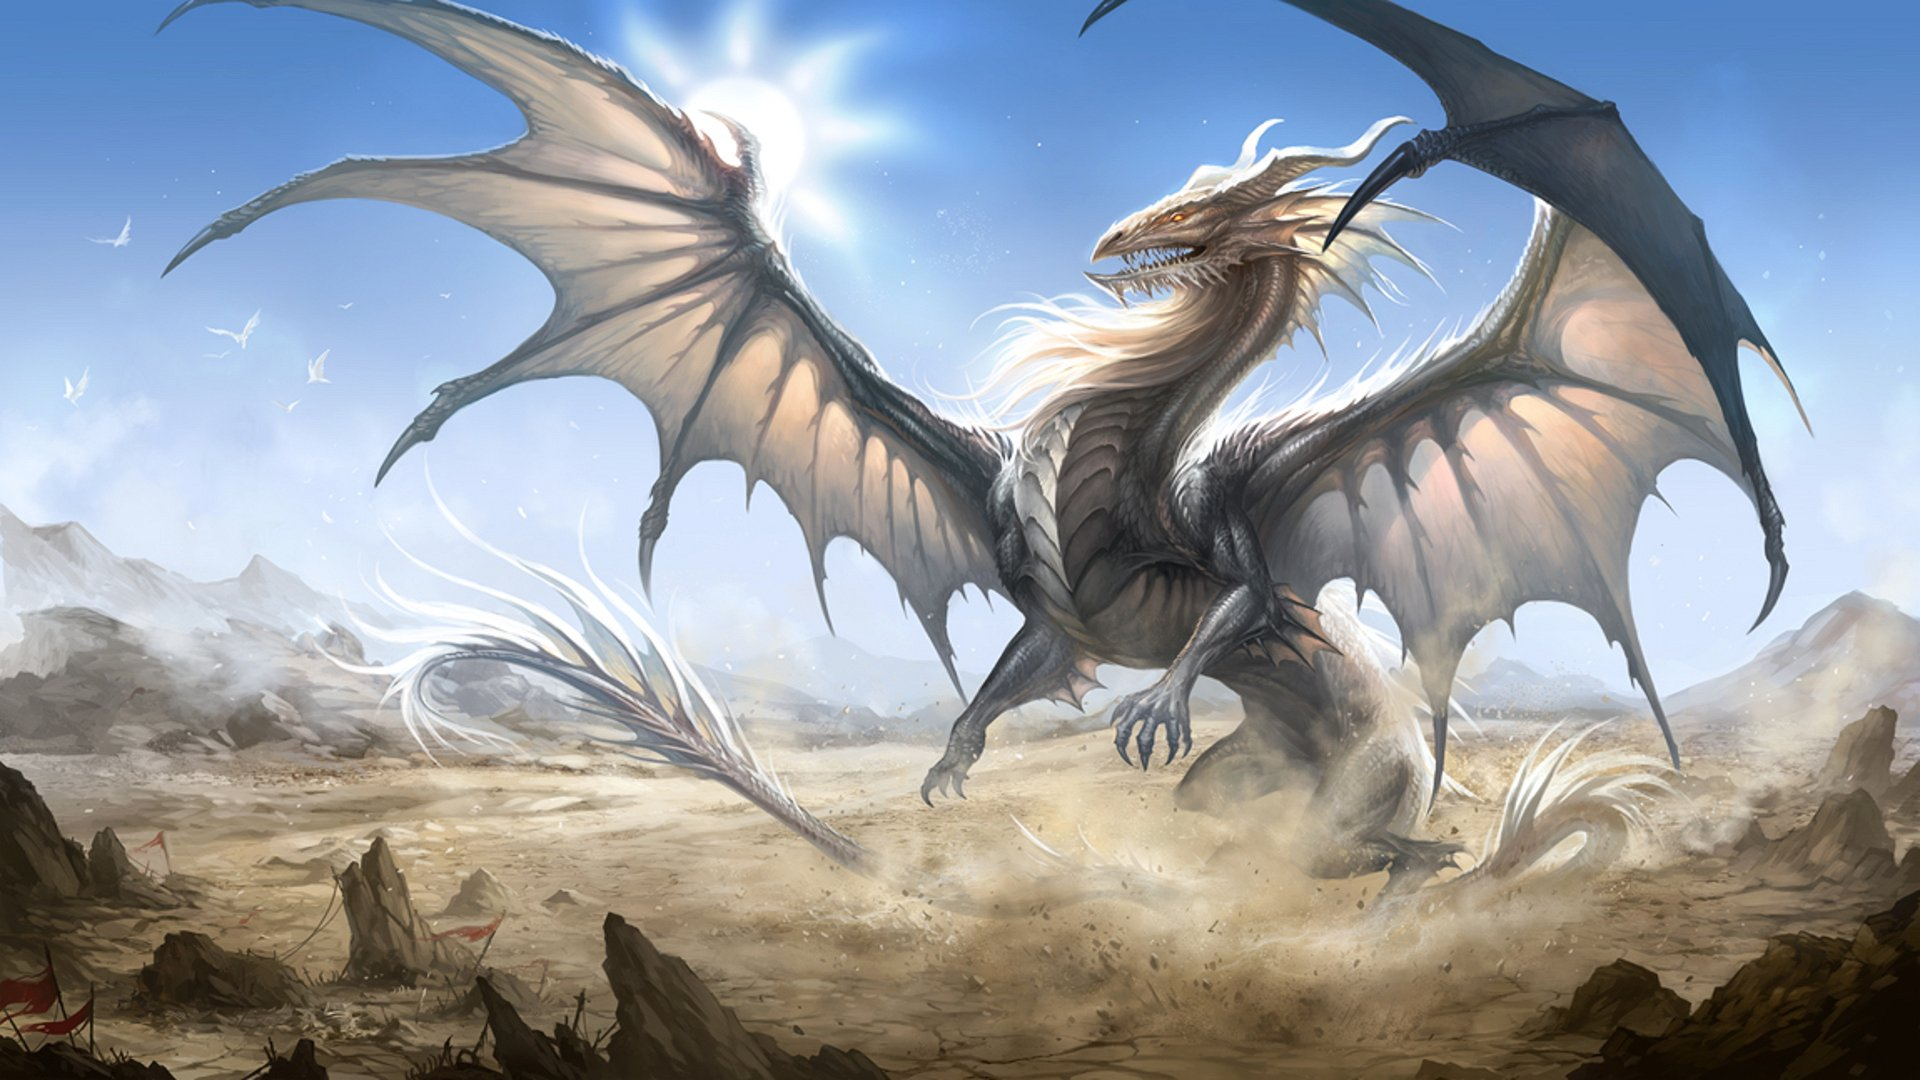 1000  ideas about Dragons on Pinterest | deviantART, Art and Fantasy